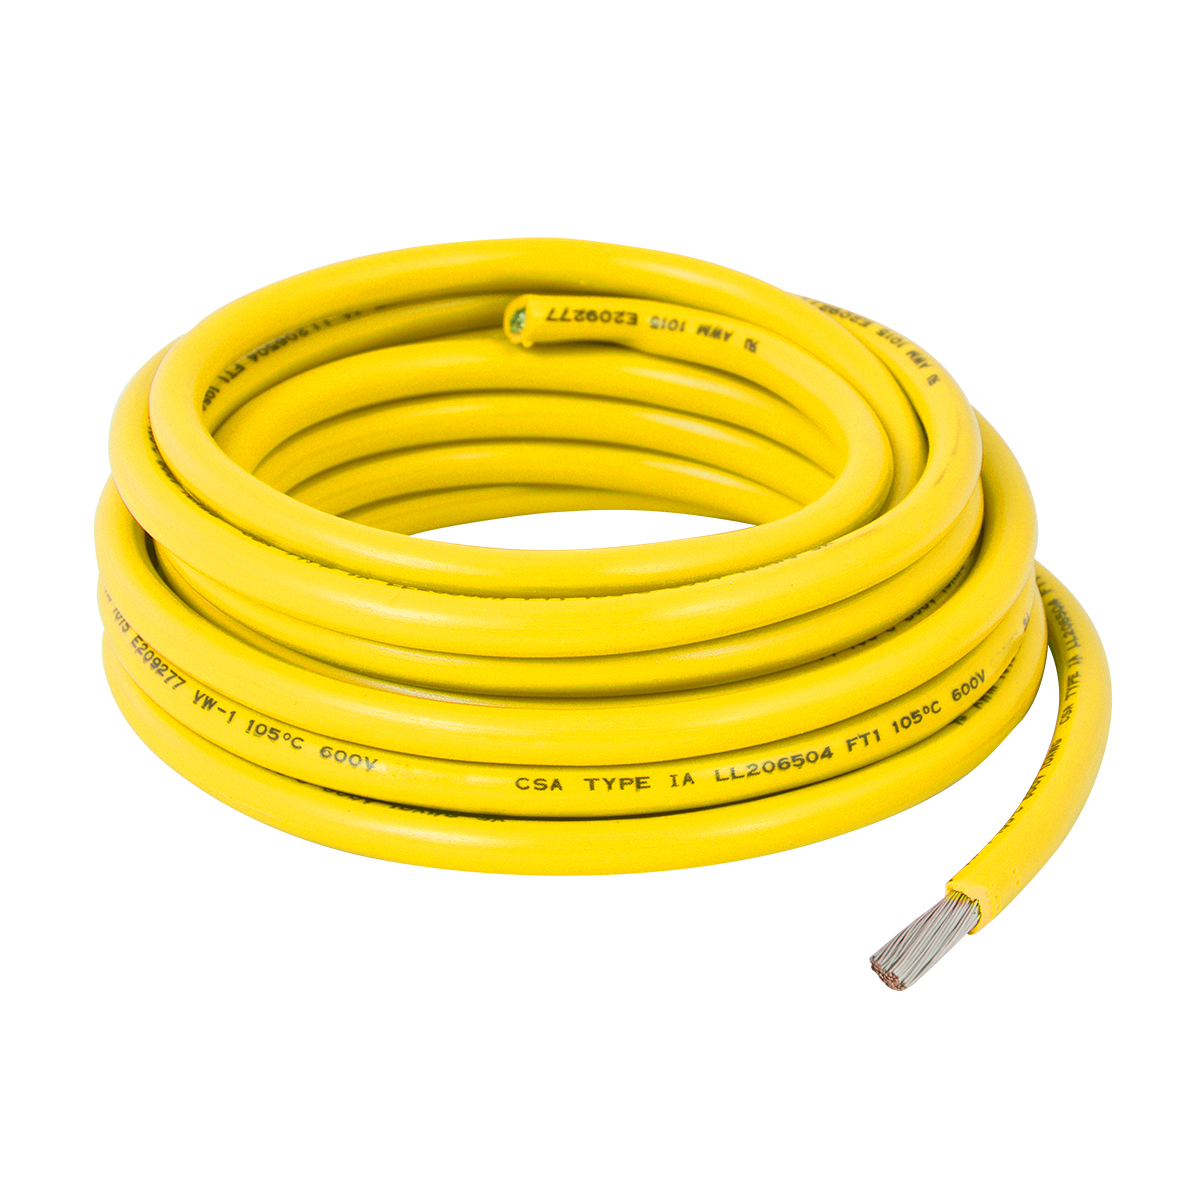 55044 Yellow UL Listed Primary Wires in 12 Gauge